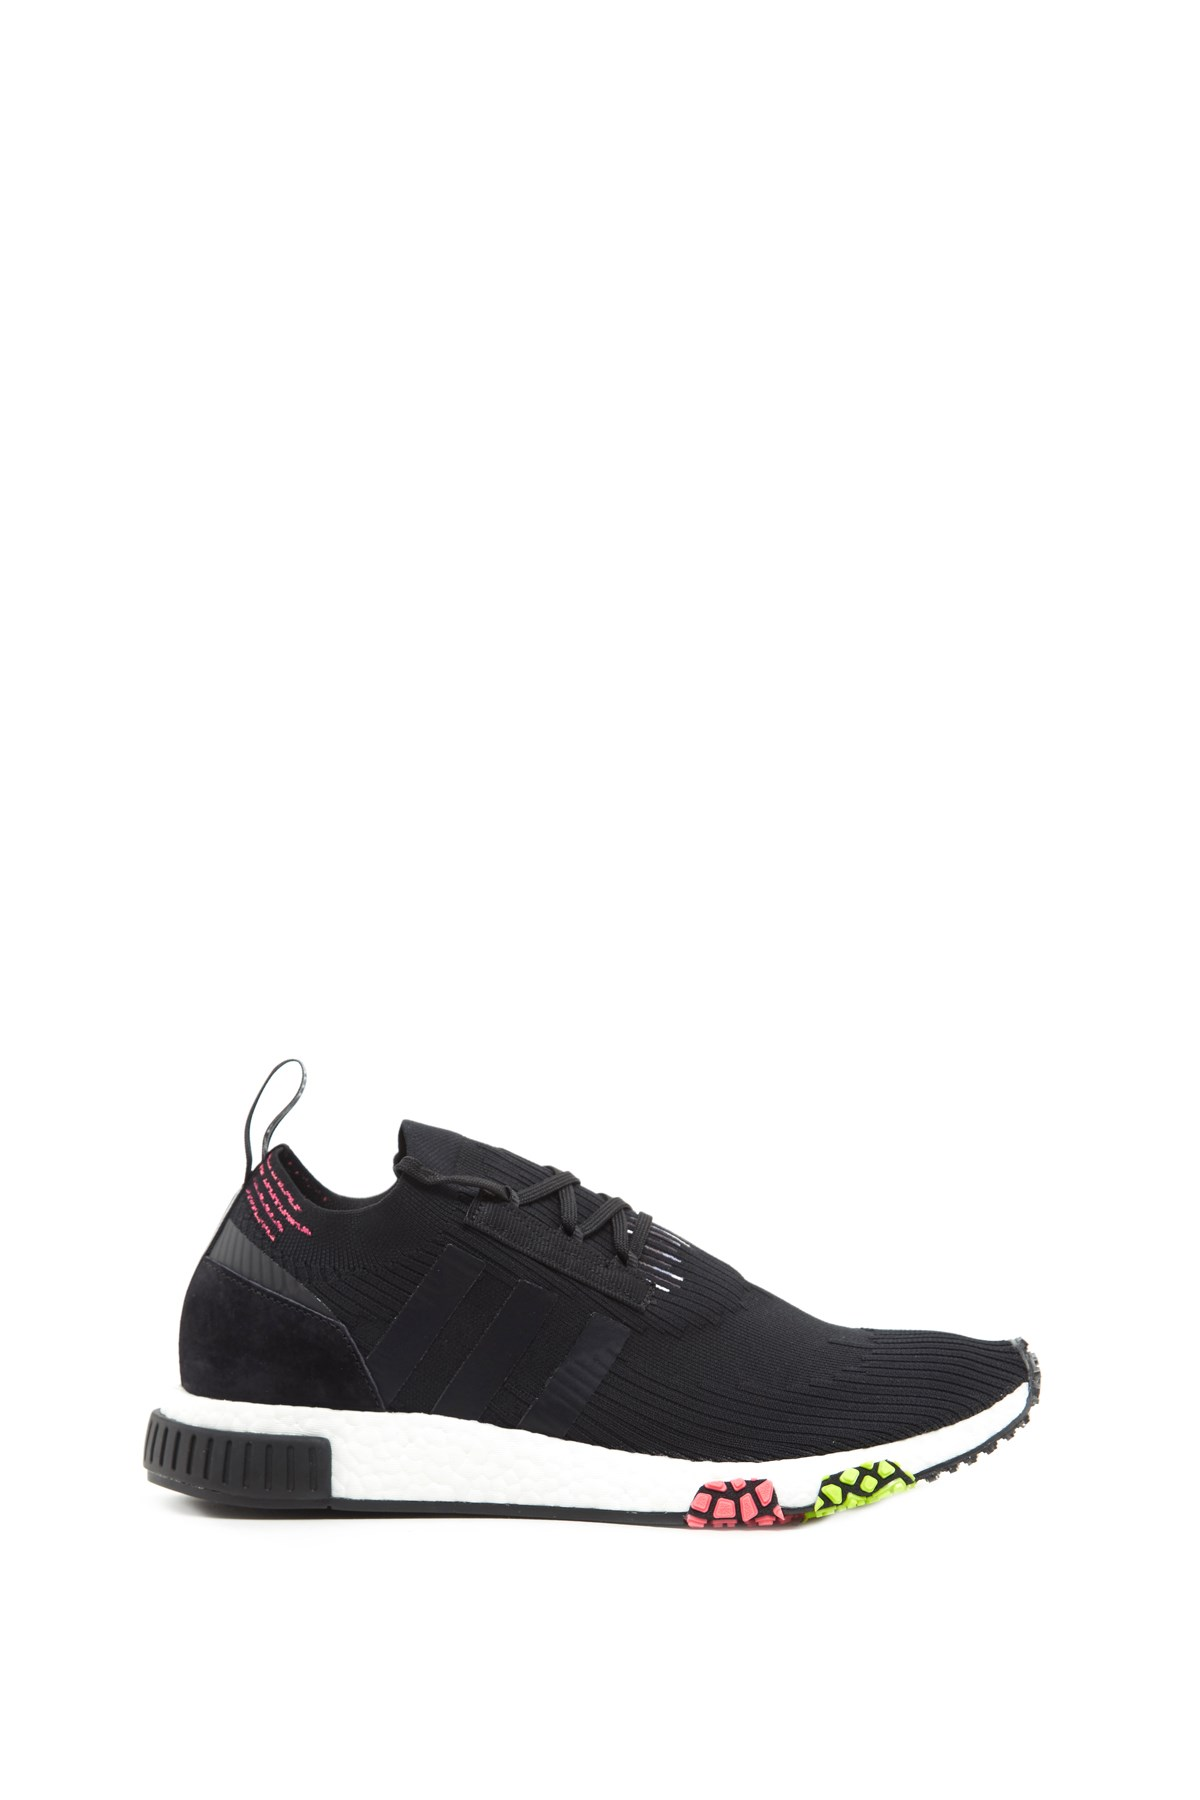 eb88c442726a6 adidas originals  nmd racer pk  sneakers available on julian-fashion ...